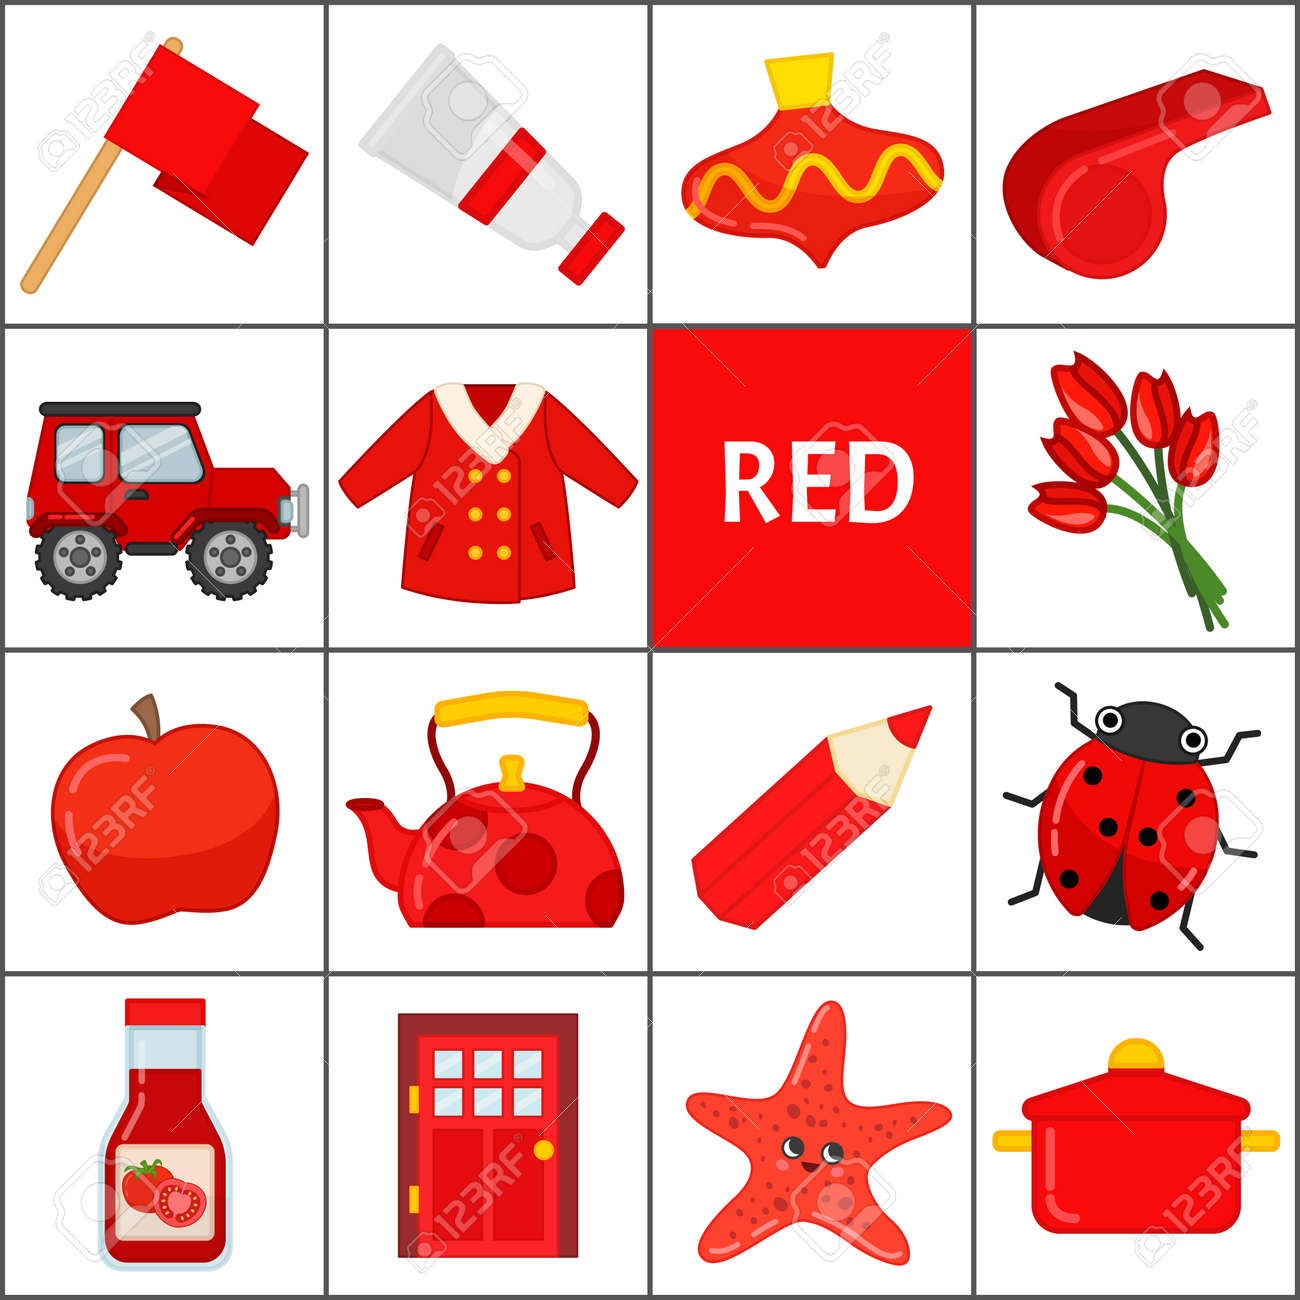 Learn the primary colors. Red. Different objects in red color. Educational material for children and toddlers. - 118996592